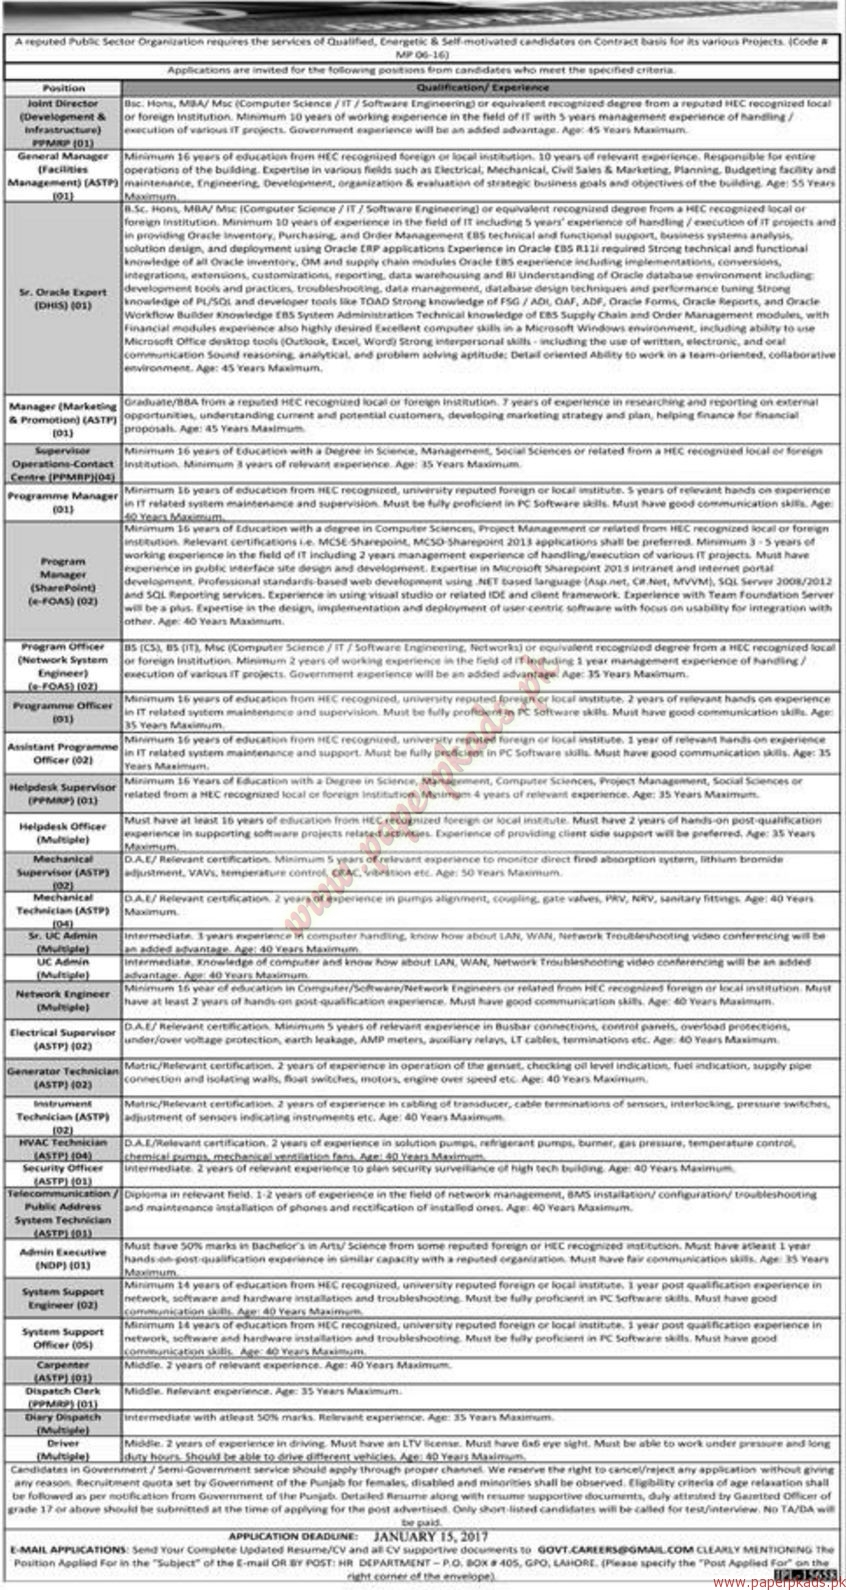 Public Sector Organization Jobs - Express Jobs ads 01 January 2017